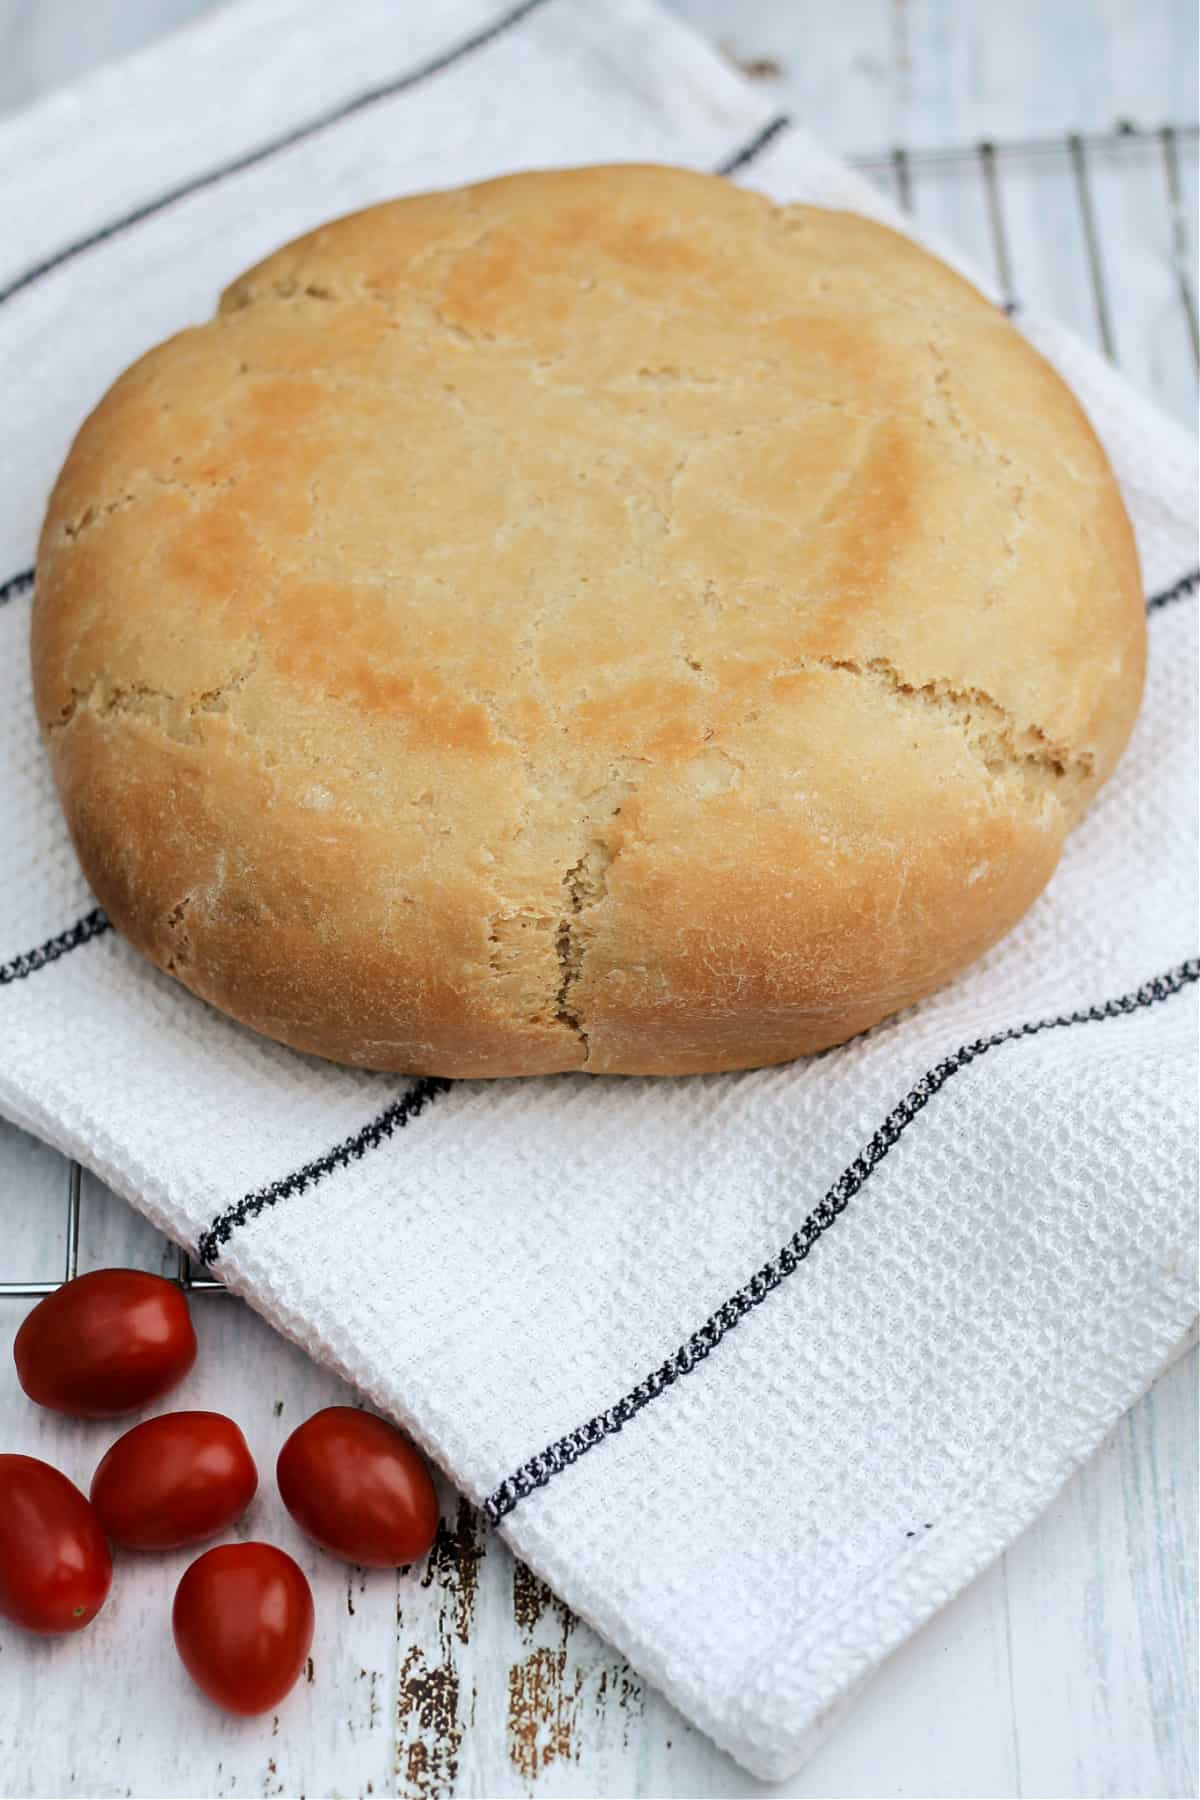 A round white loaf on a white striped cloth, with plum tomatoes on the side.